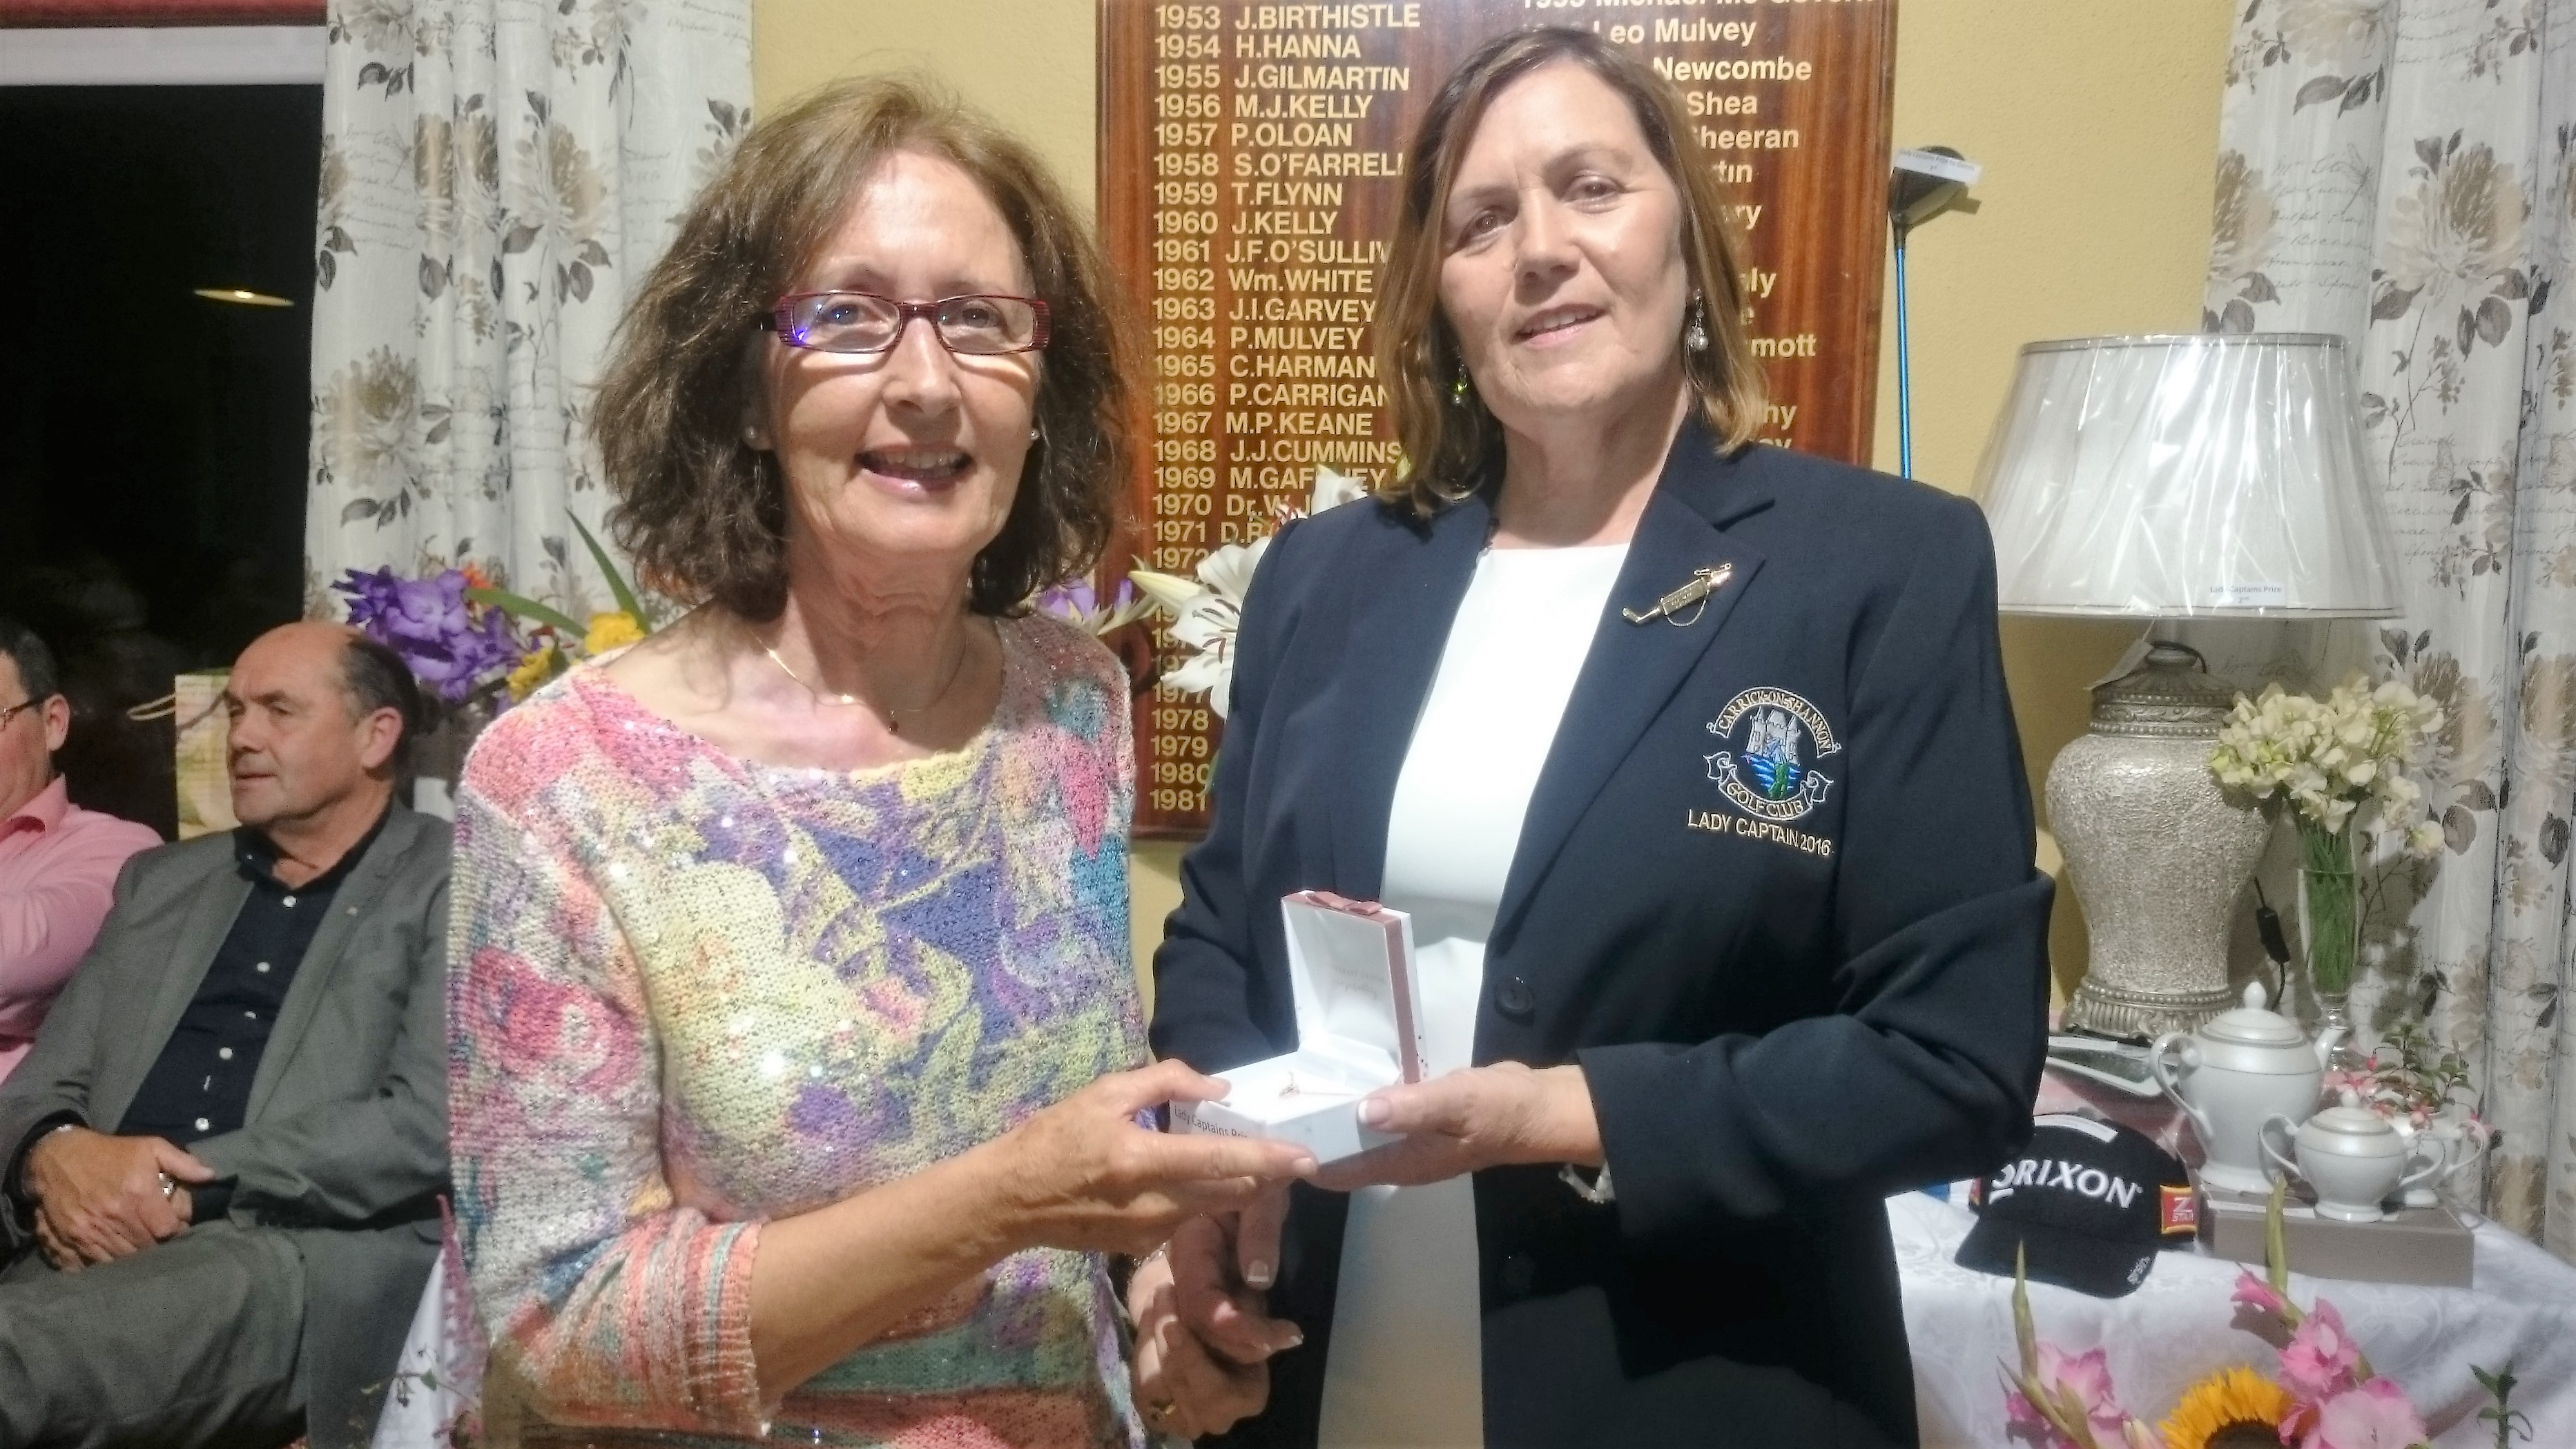 LADY CAPTAINS DAY: Mary Monahan(Third 9), Lady Captain Noeleen Moffatt